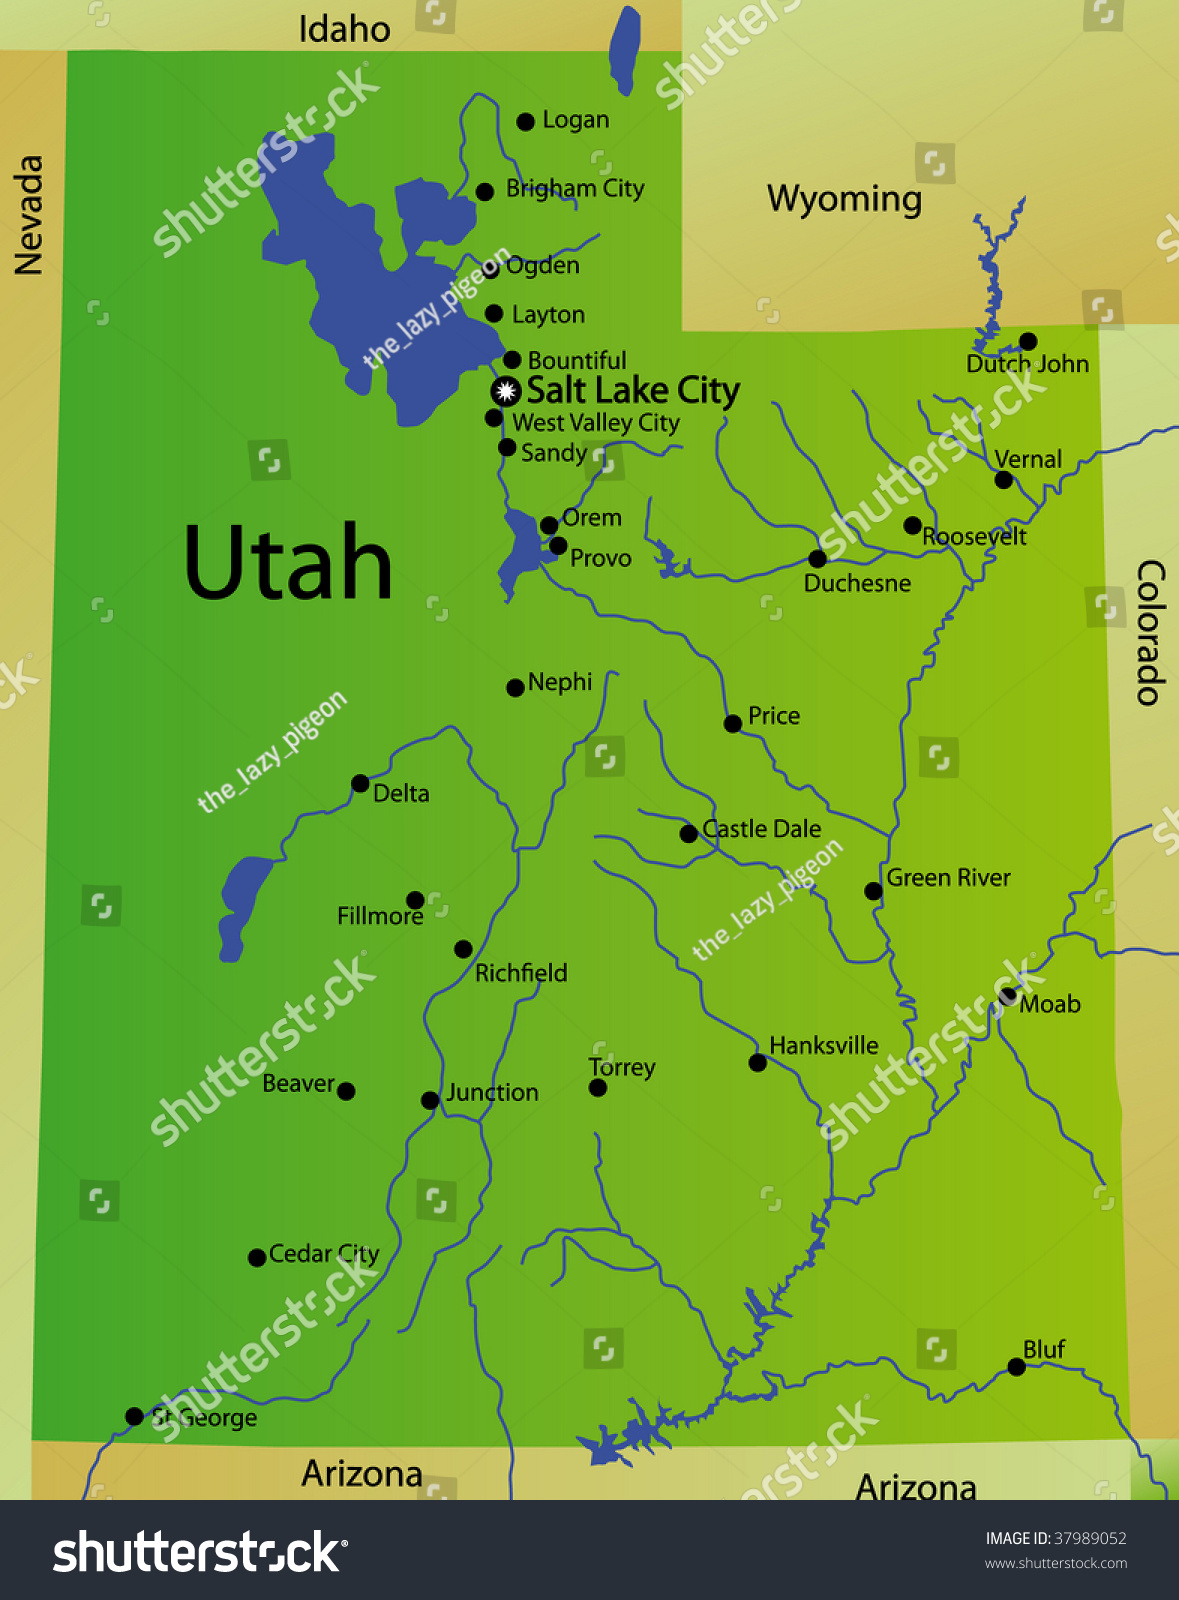 Utah State On USA Map Utah Flag And Map US States Royalty Free - Utah on the us map